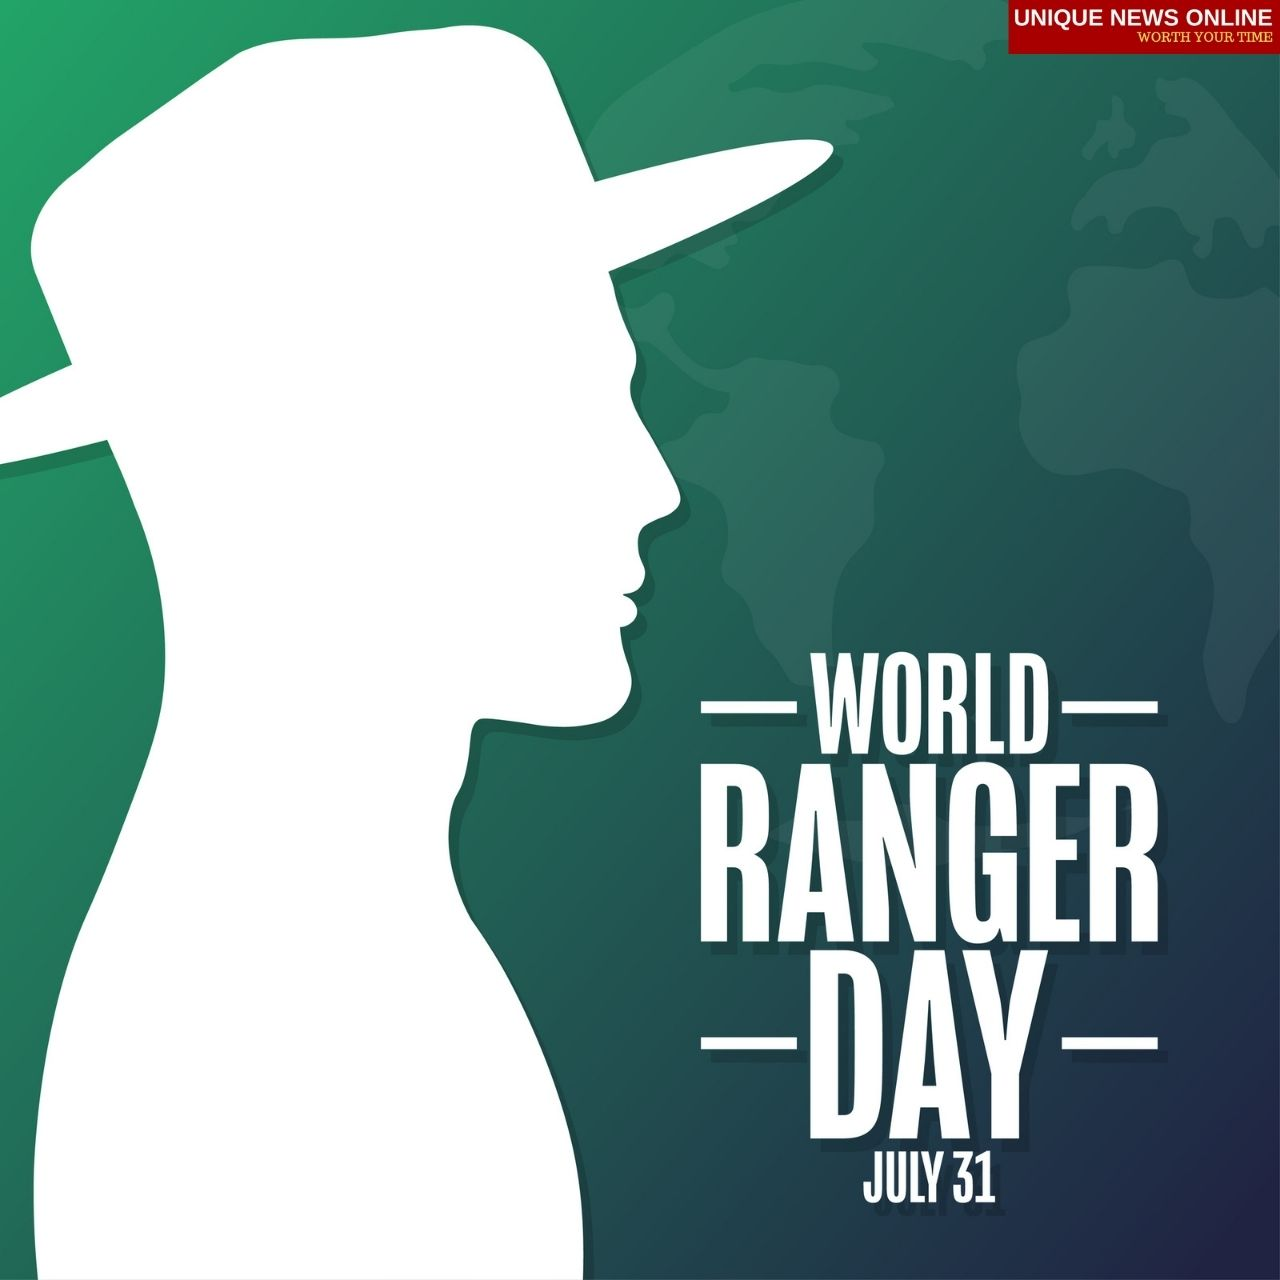 World Ranger Day 2021 Quotes, Messages, HD Images, and Status to commemorate Rangers killed or injured in the line of duty